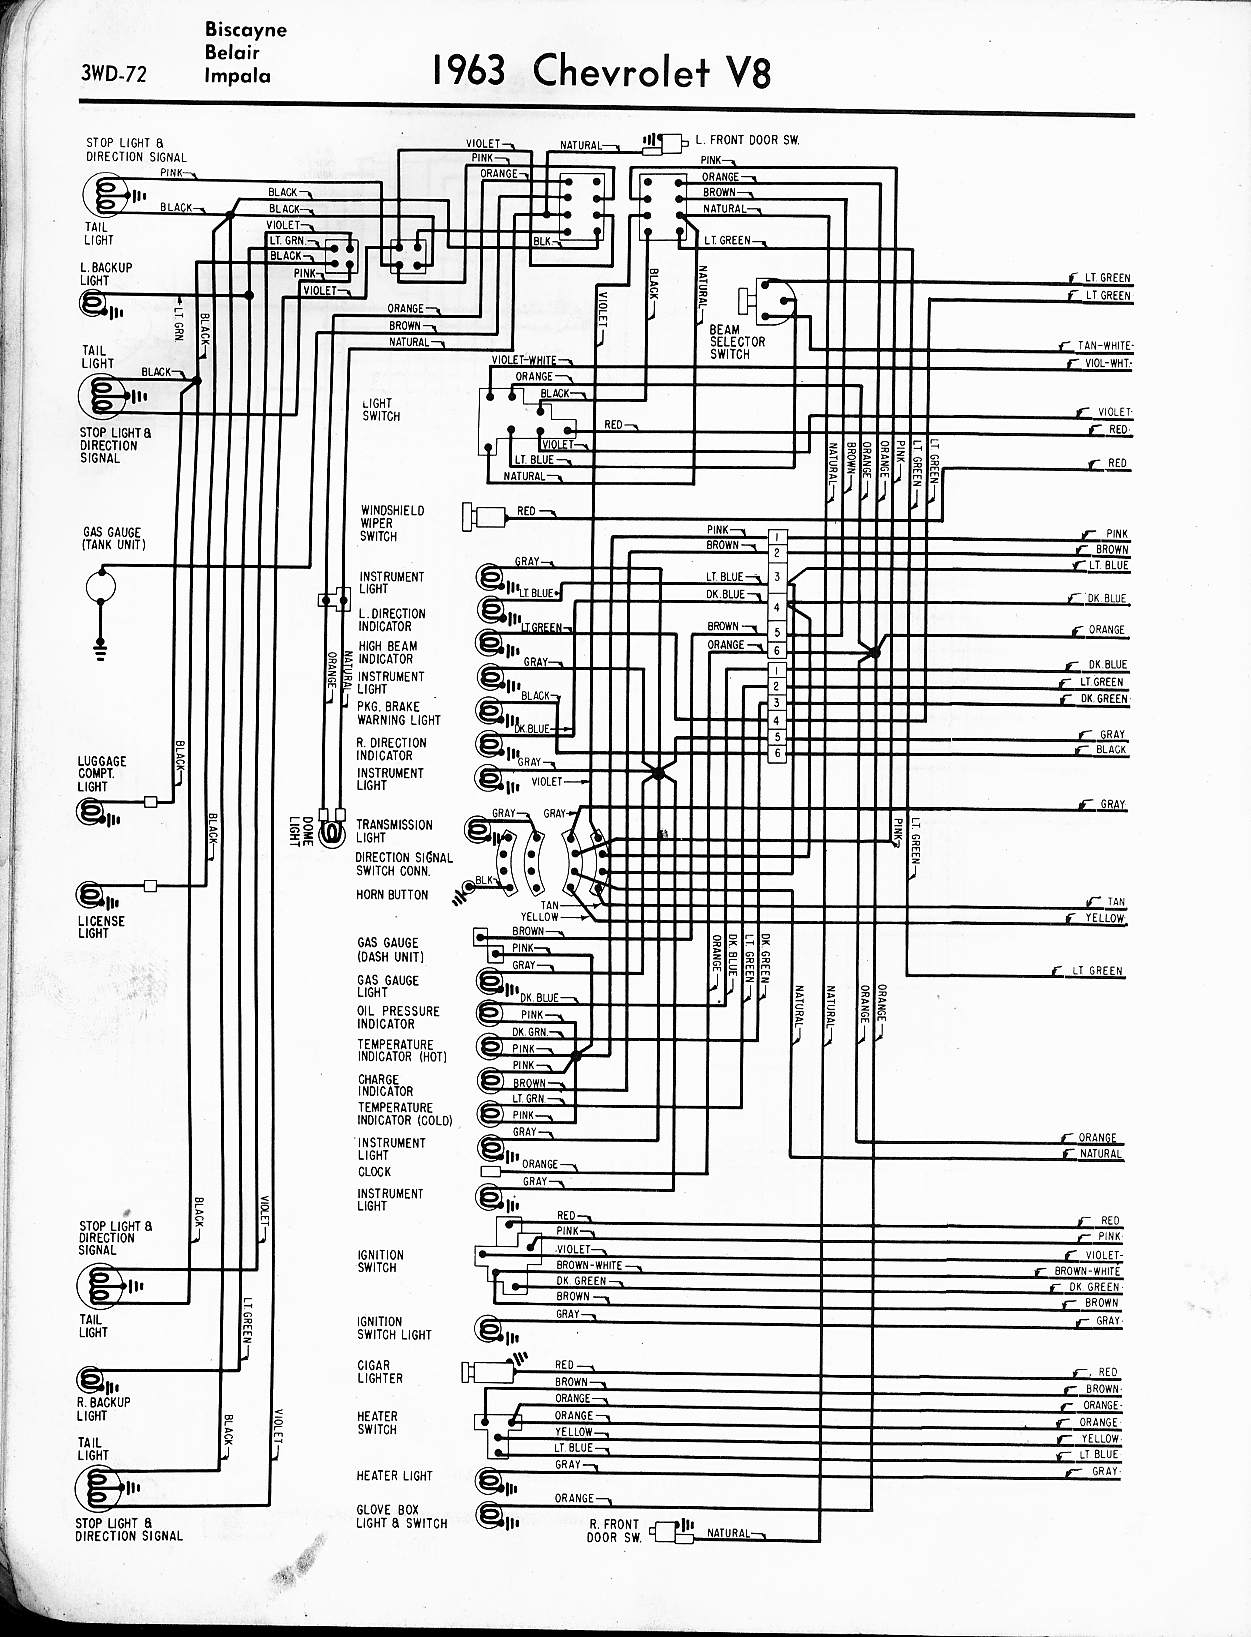 Chevy Impala Wiring Diagram